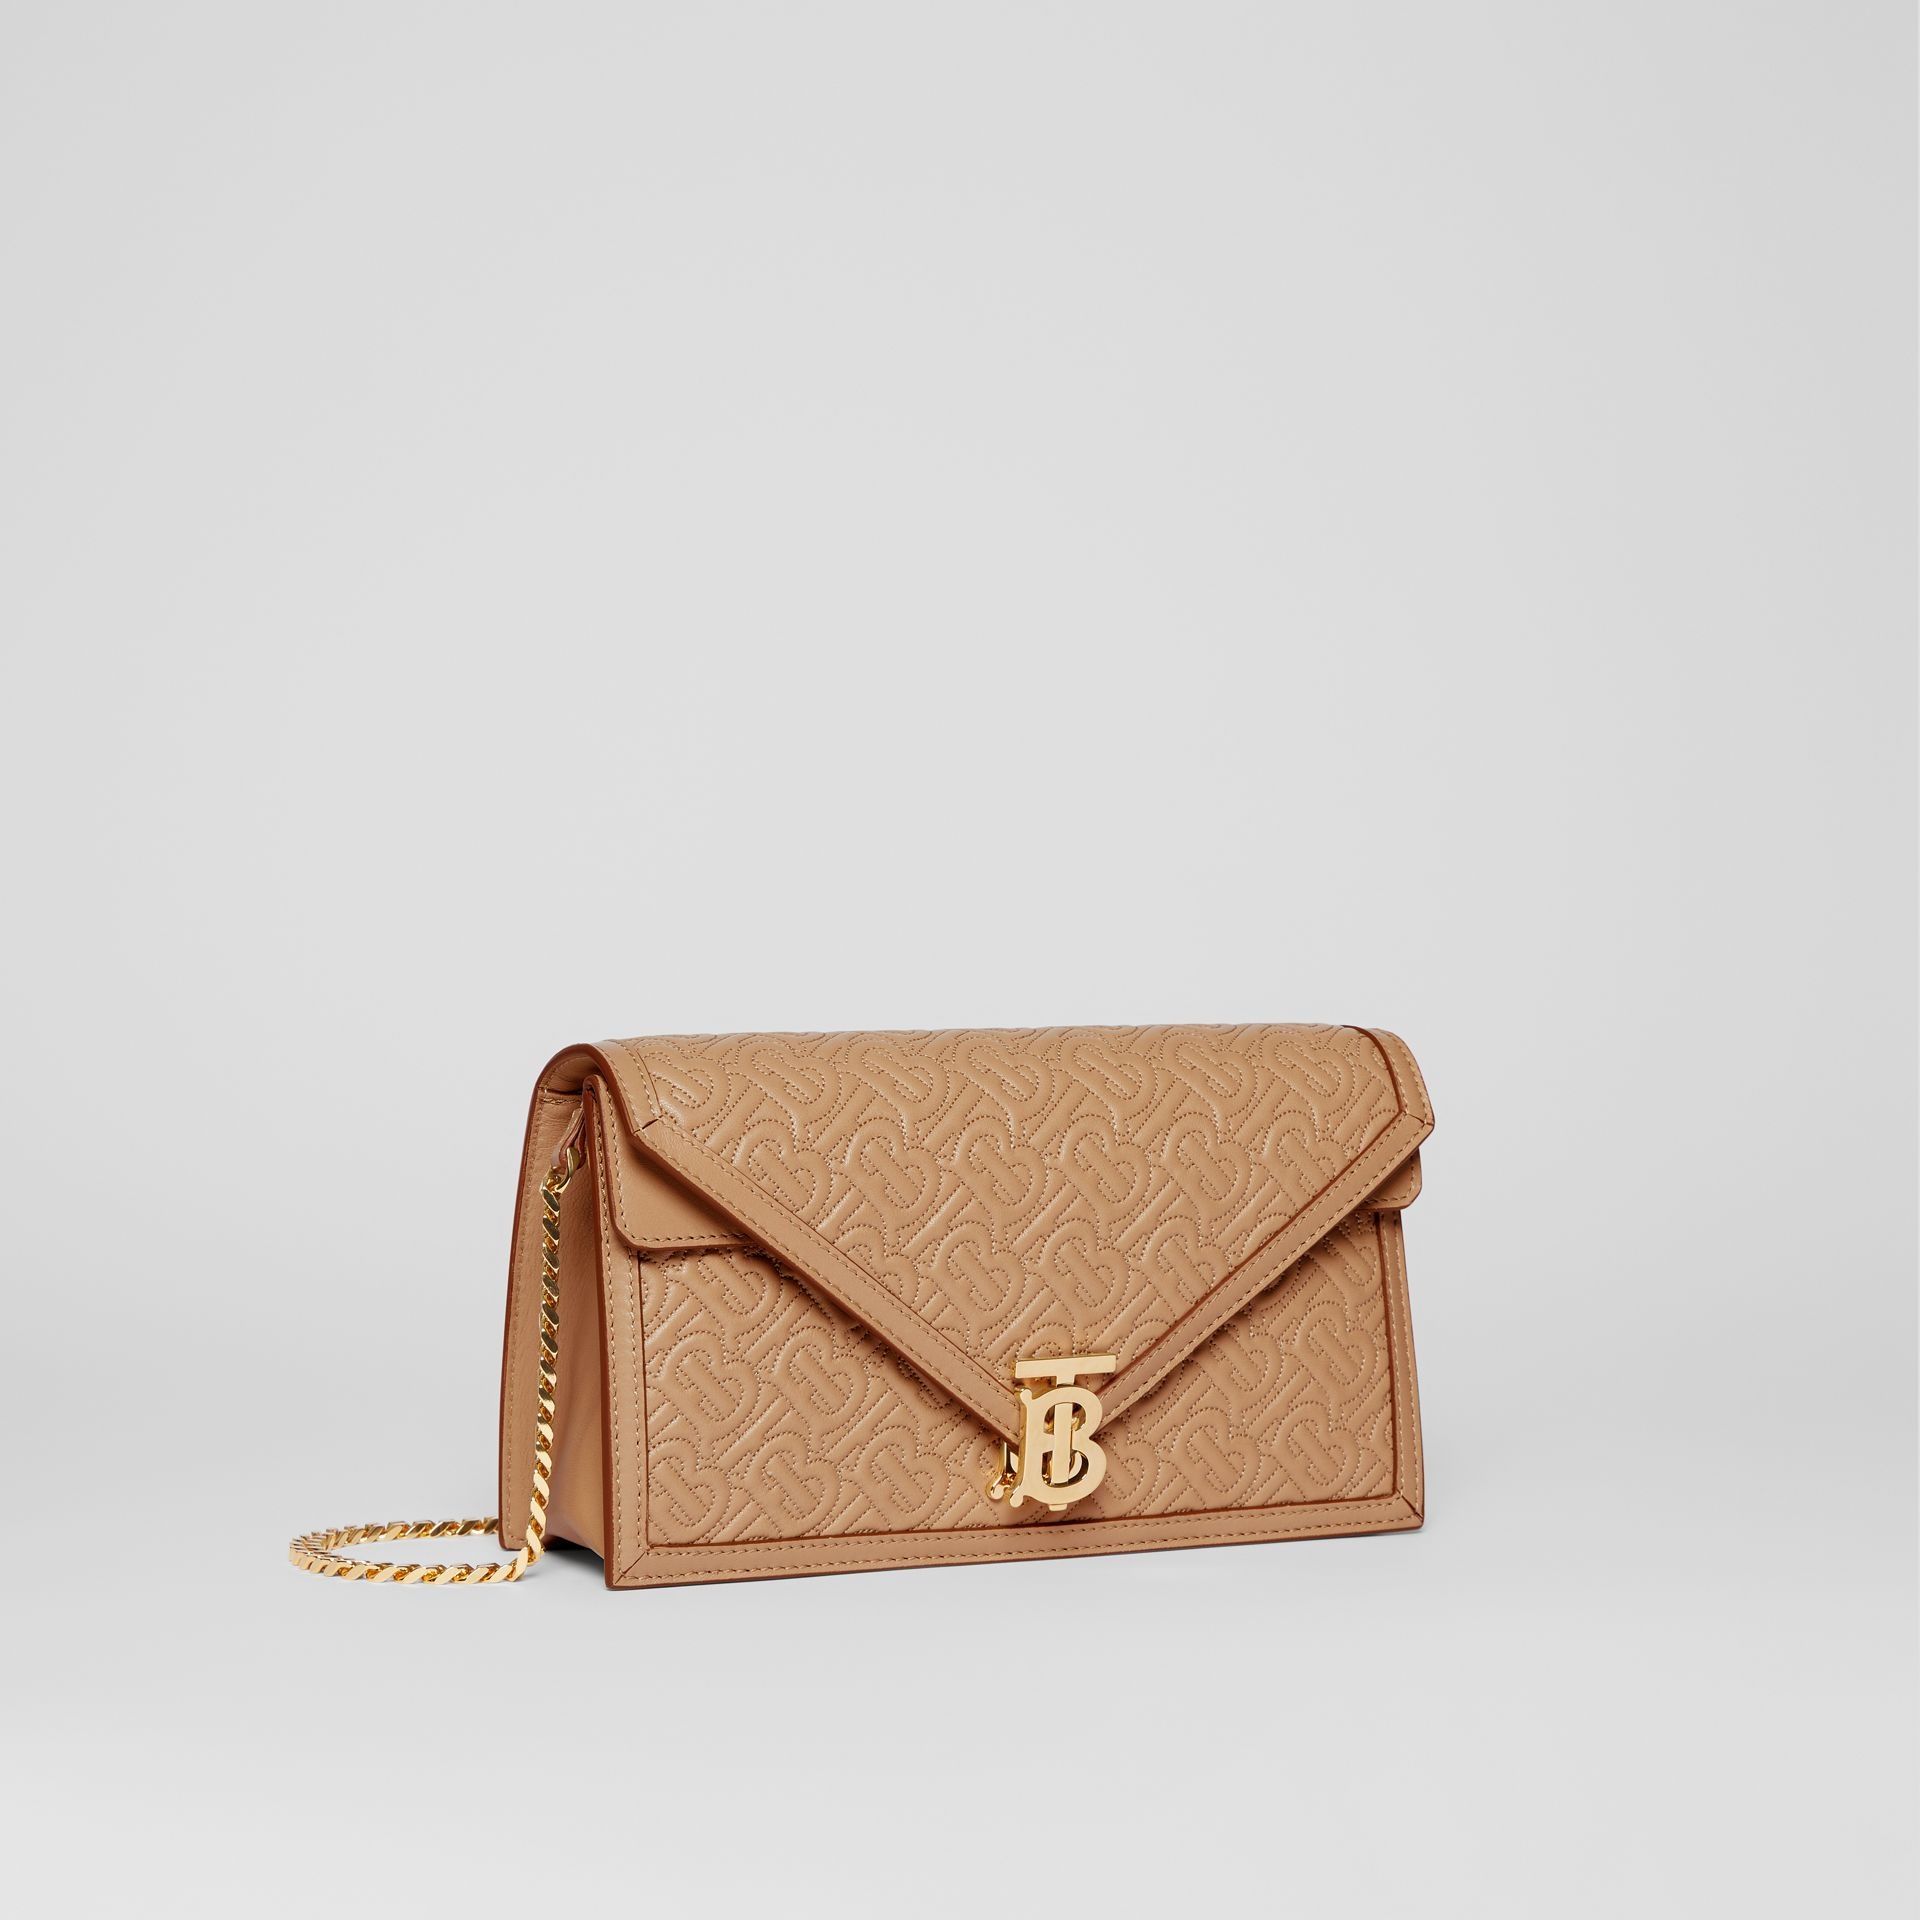 Small Quilted Monogram TB Envelope Clutch in Honey - Women | Burberry - gallery image 6